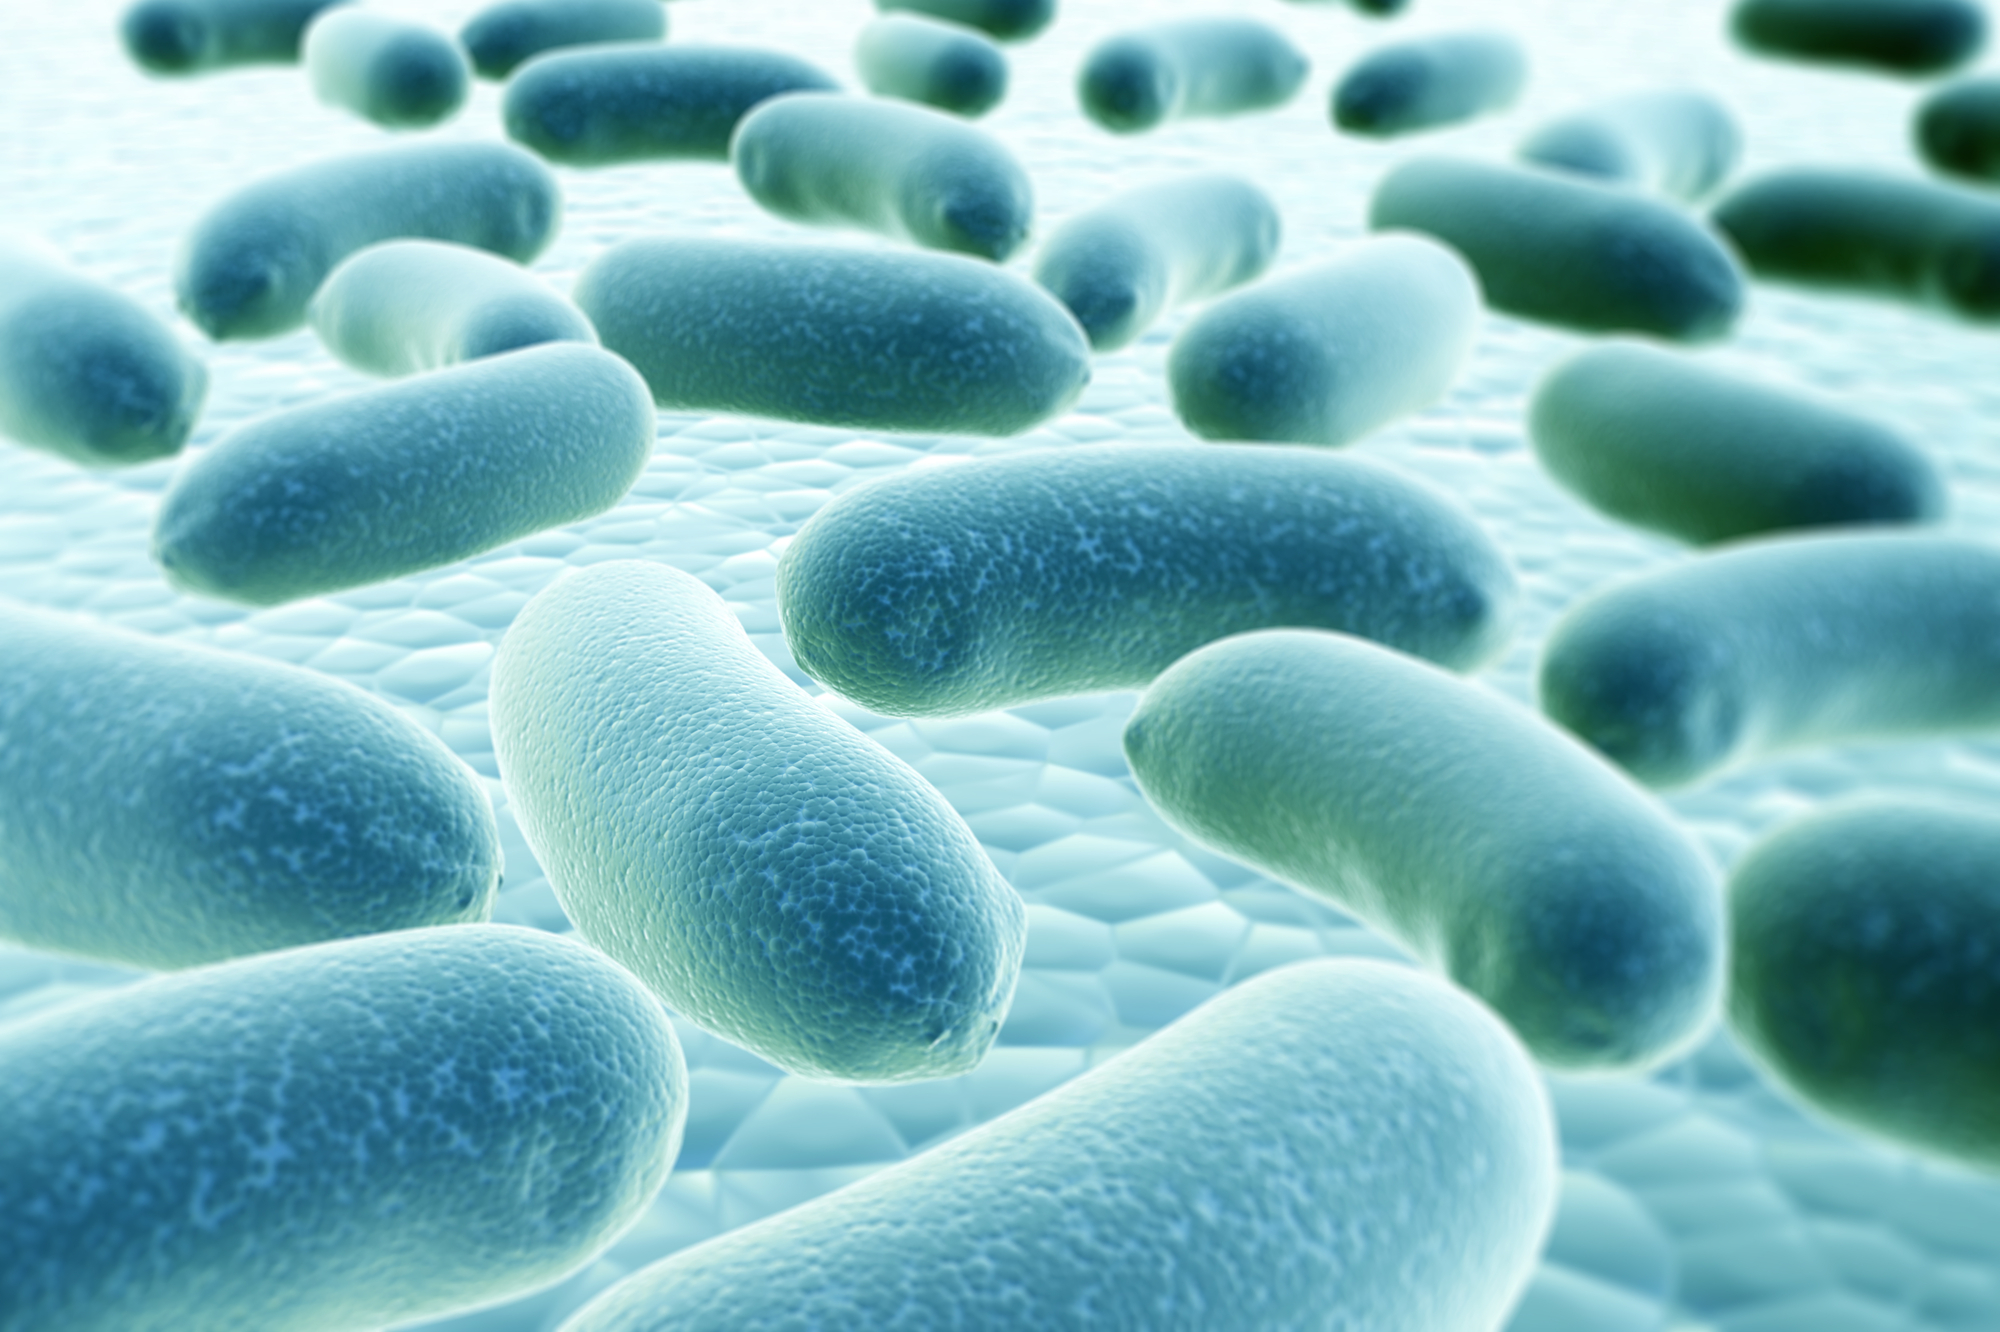 Peptides in your skin could be key to fighting superbugs